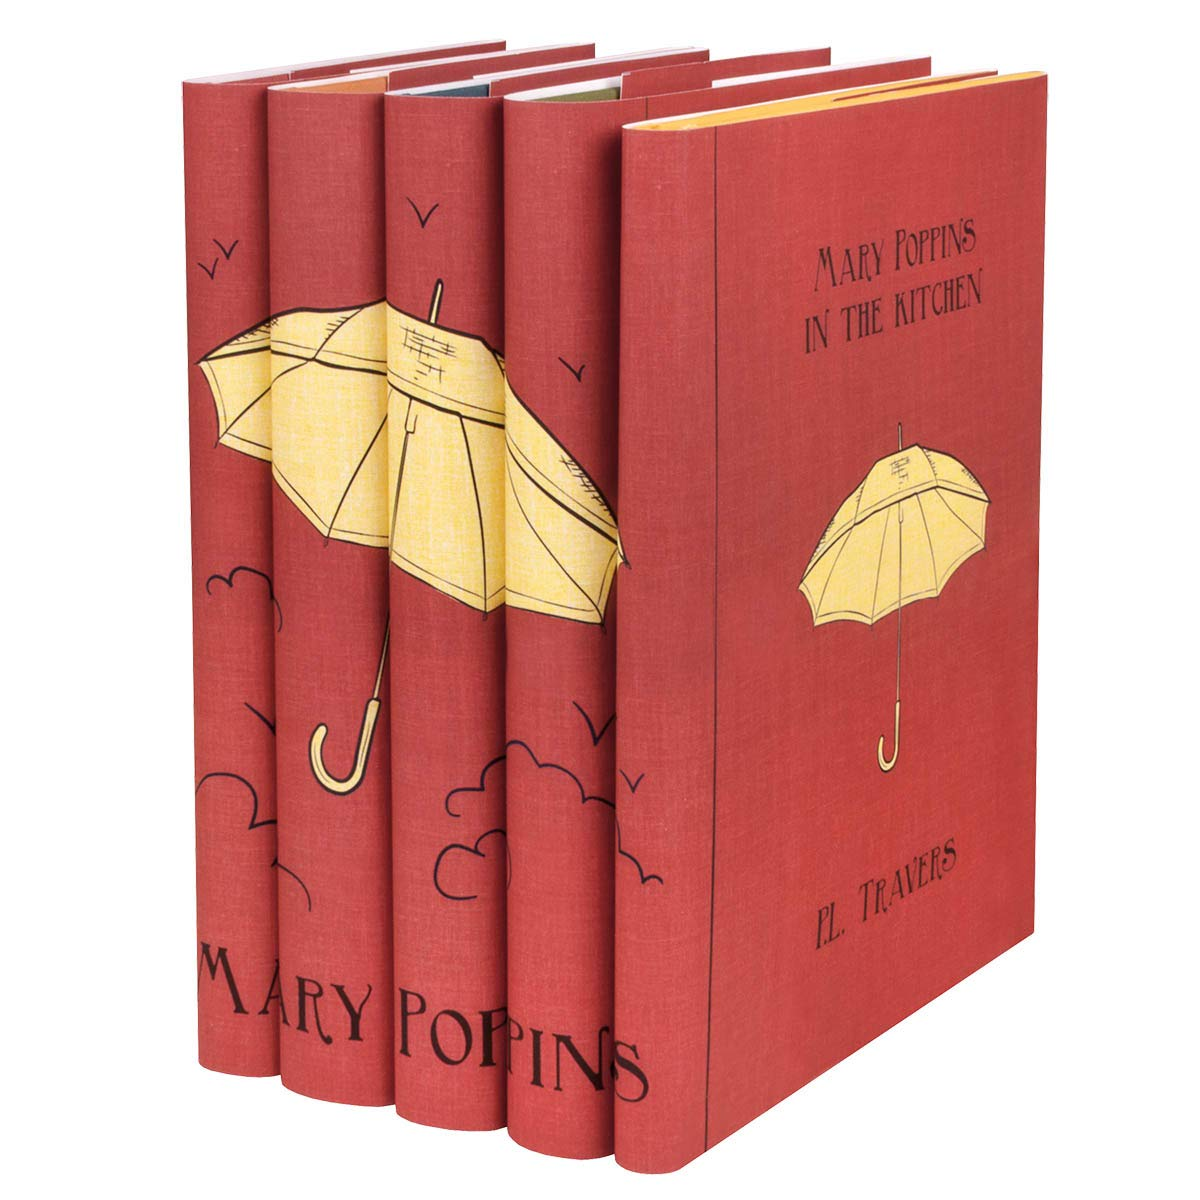 Juniper Books Mary Poppins| Five-Volume Hardcover Book Set with Custom Designed Dust Jackets | Author Pamela Lyndon Travers by Juniper Books